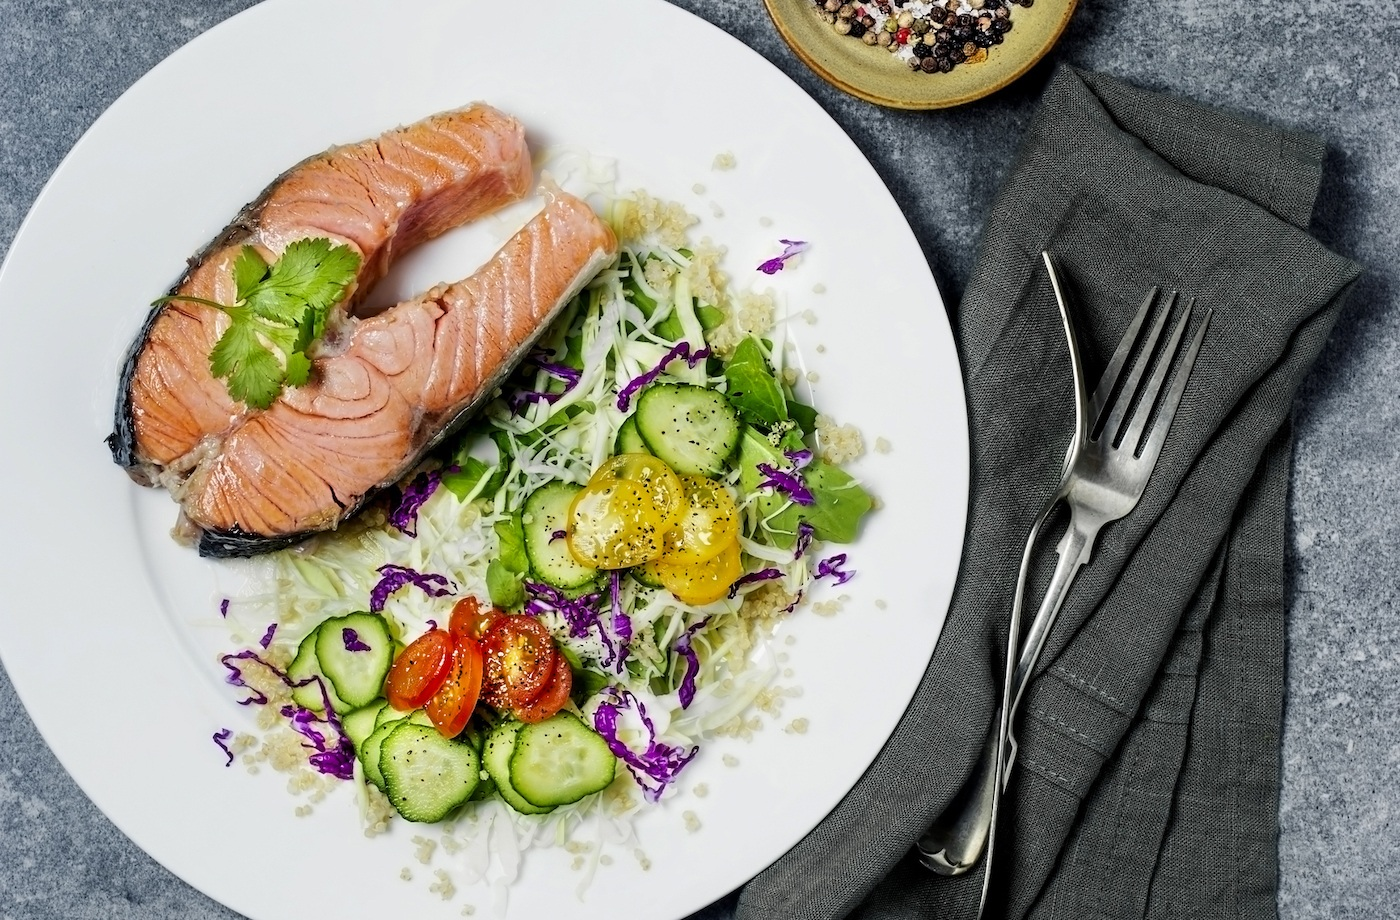 Here's what a healthy plate looks like on the Mediterranean diet